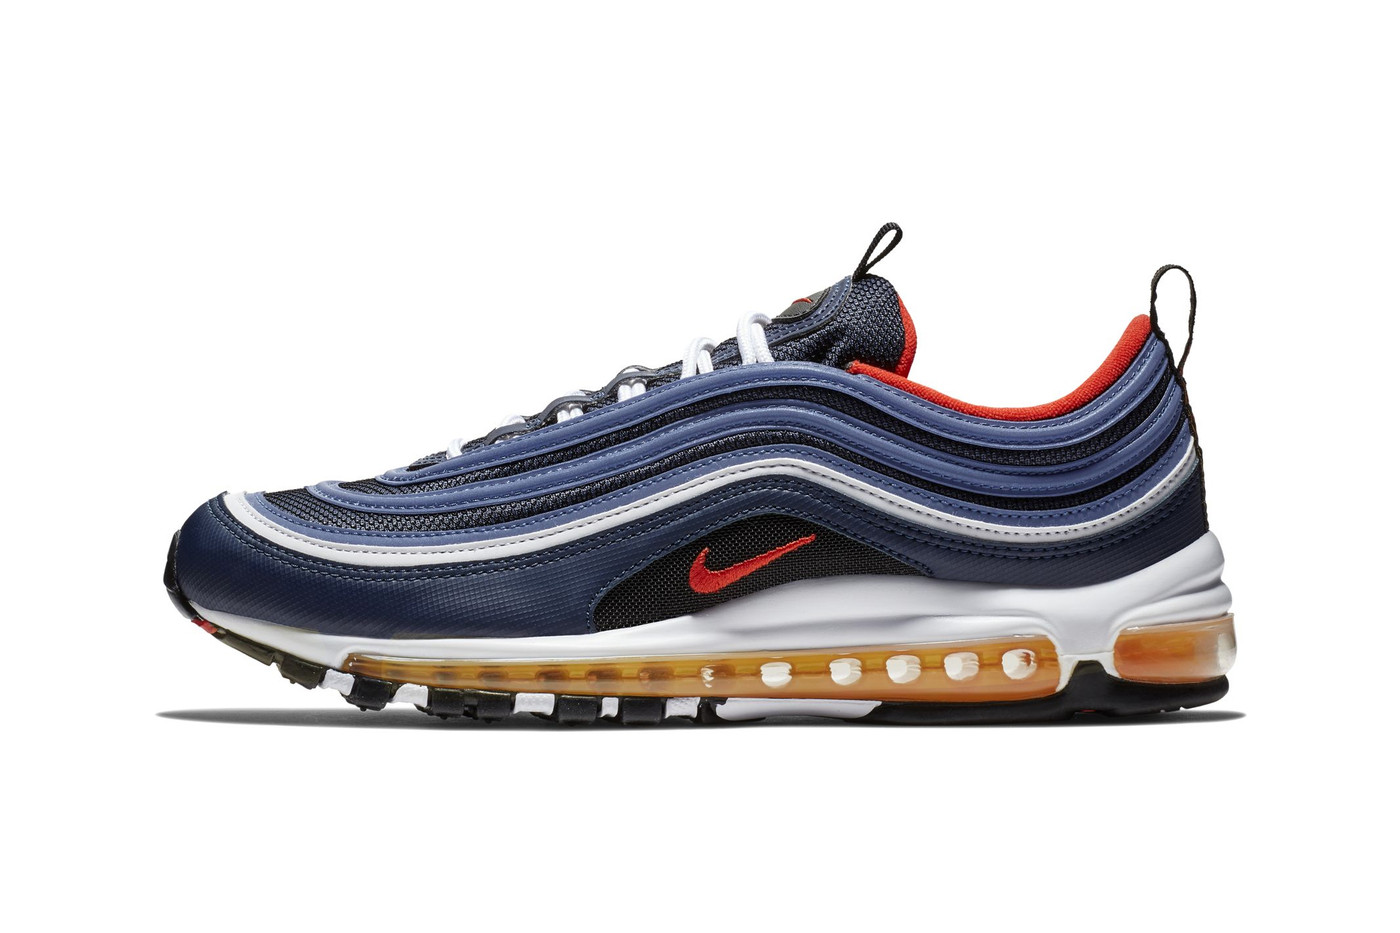 nike-air-max-97-suits-up-in-midnight-navy-habanero-red-01